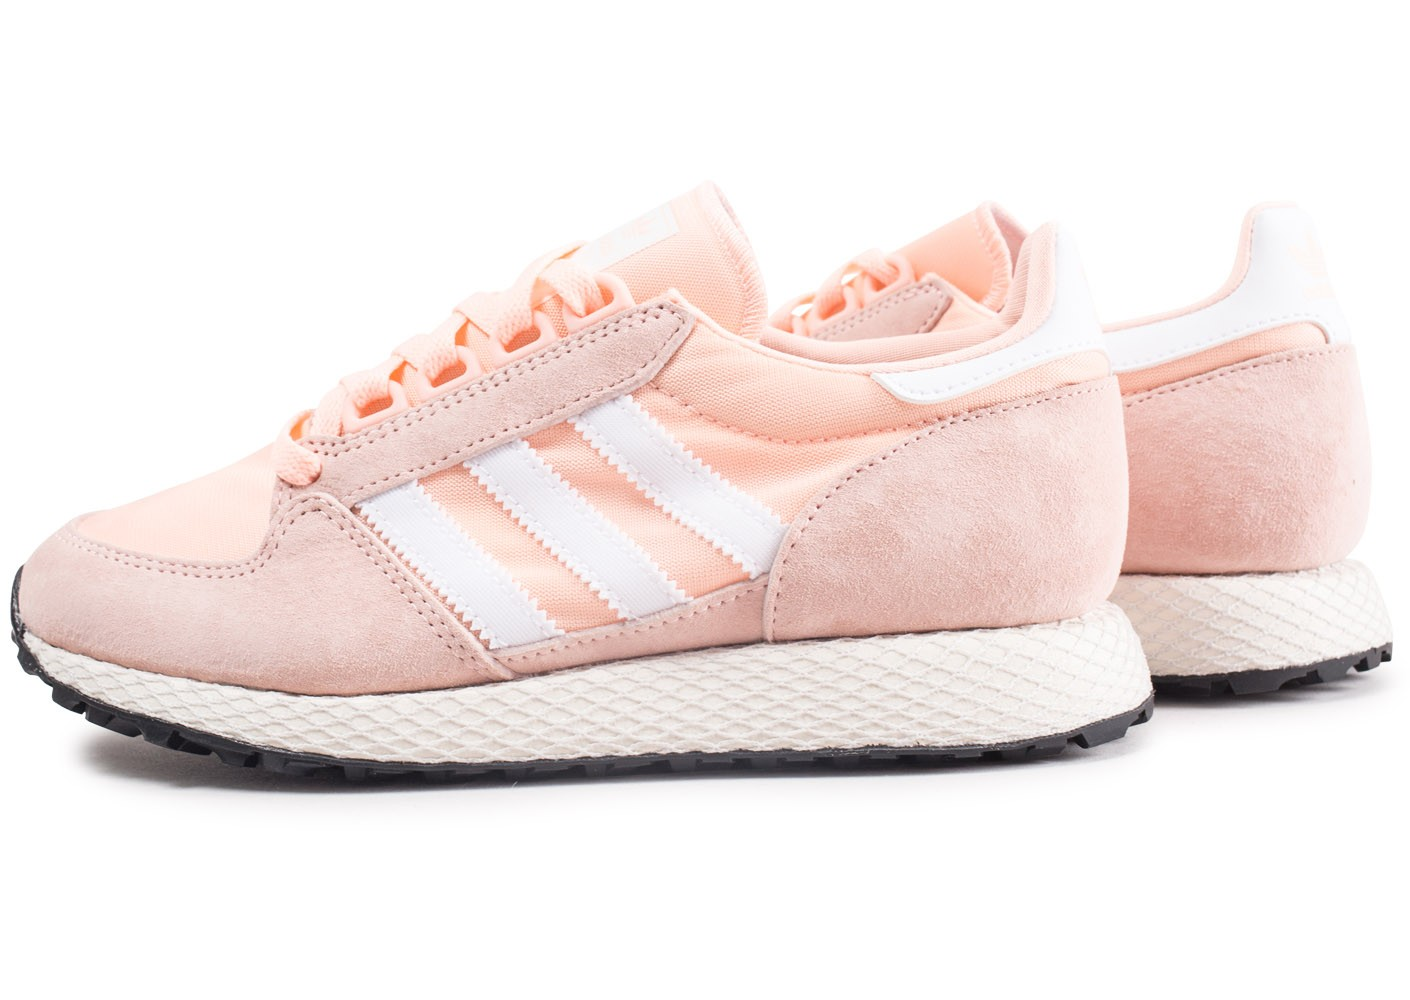 adidas femme Grove et rose Chaussures adidas Forest blanche UUHxz